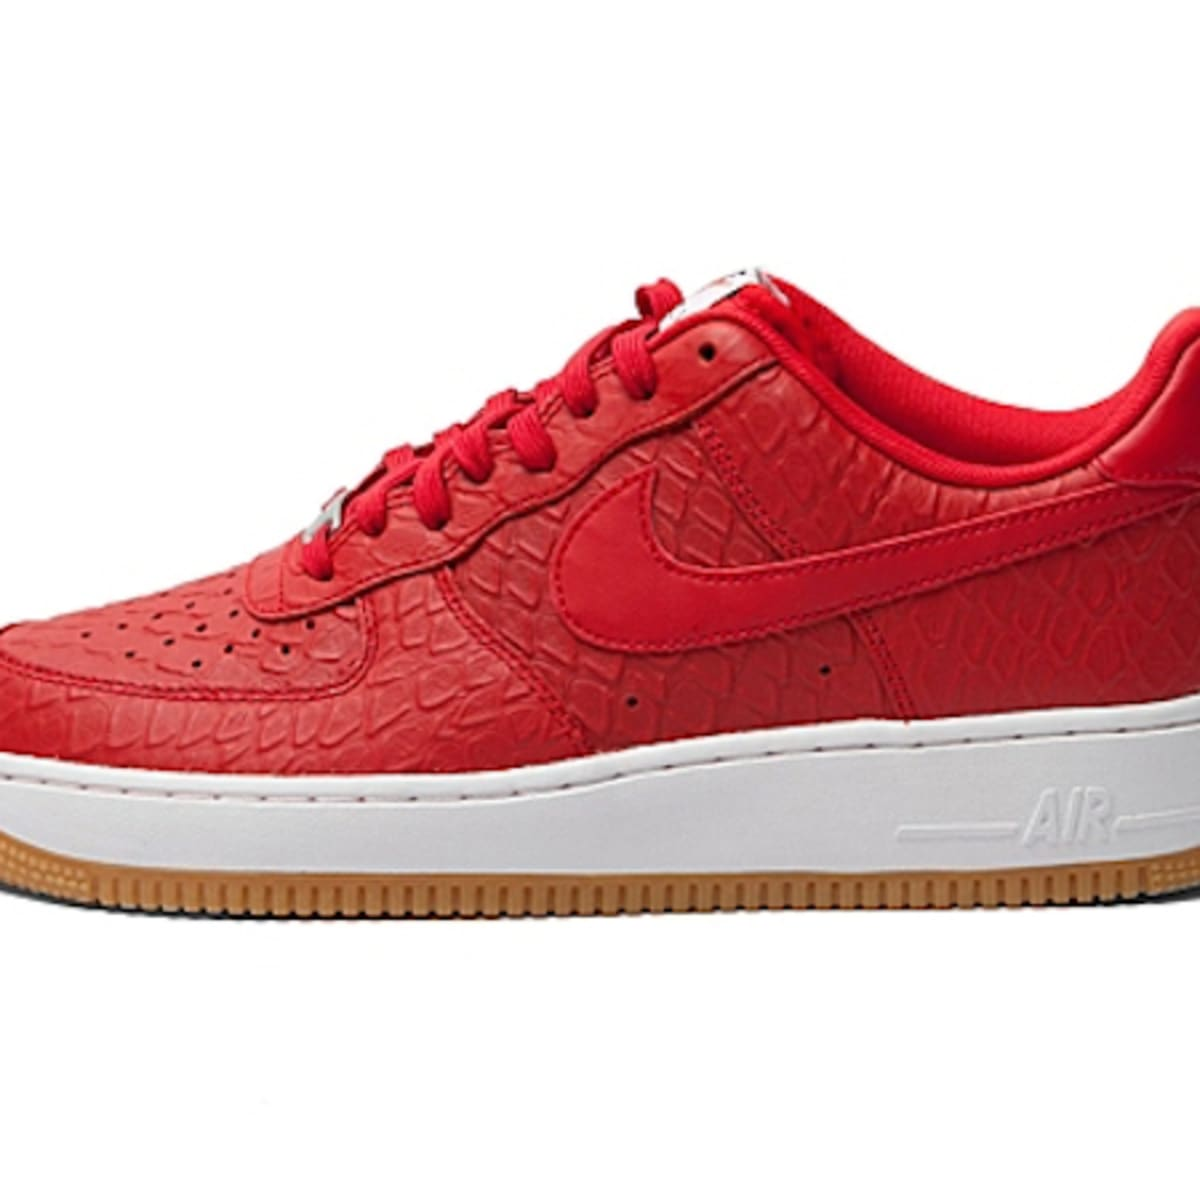 Nike Air Force 1 Low Croc And Gum Pack Freshness Mag